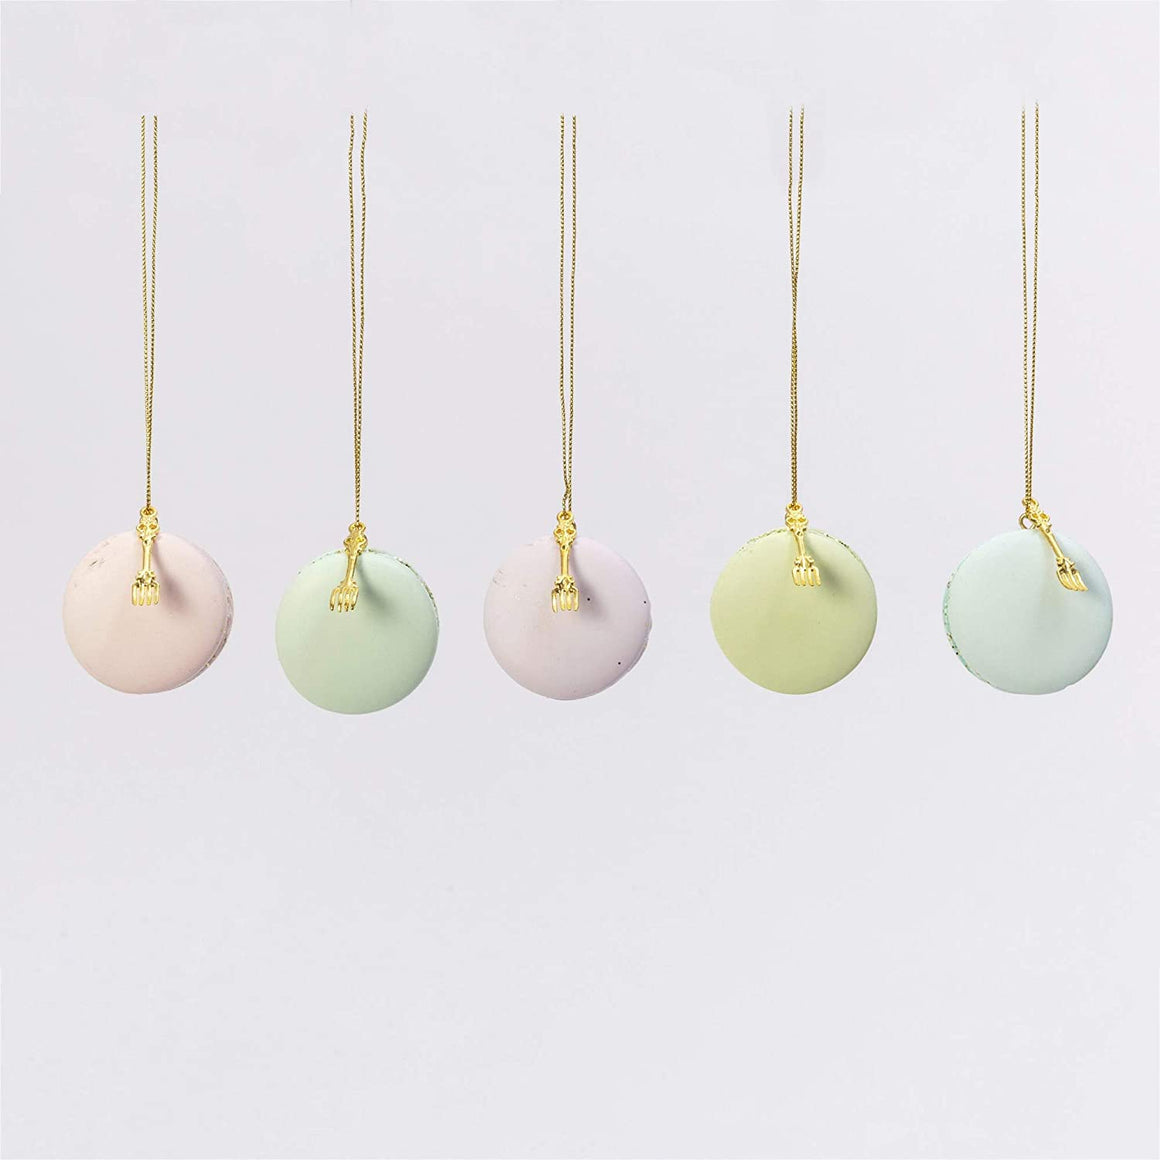 2541260 Resin Macaron Ornaments in Color Box Set of 5, 1.9-inch Height